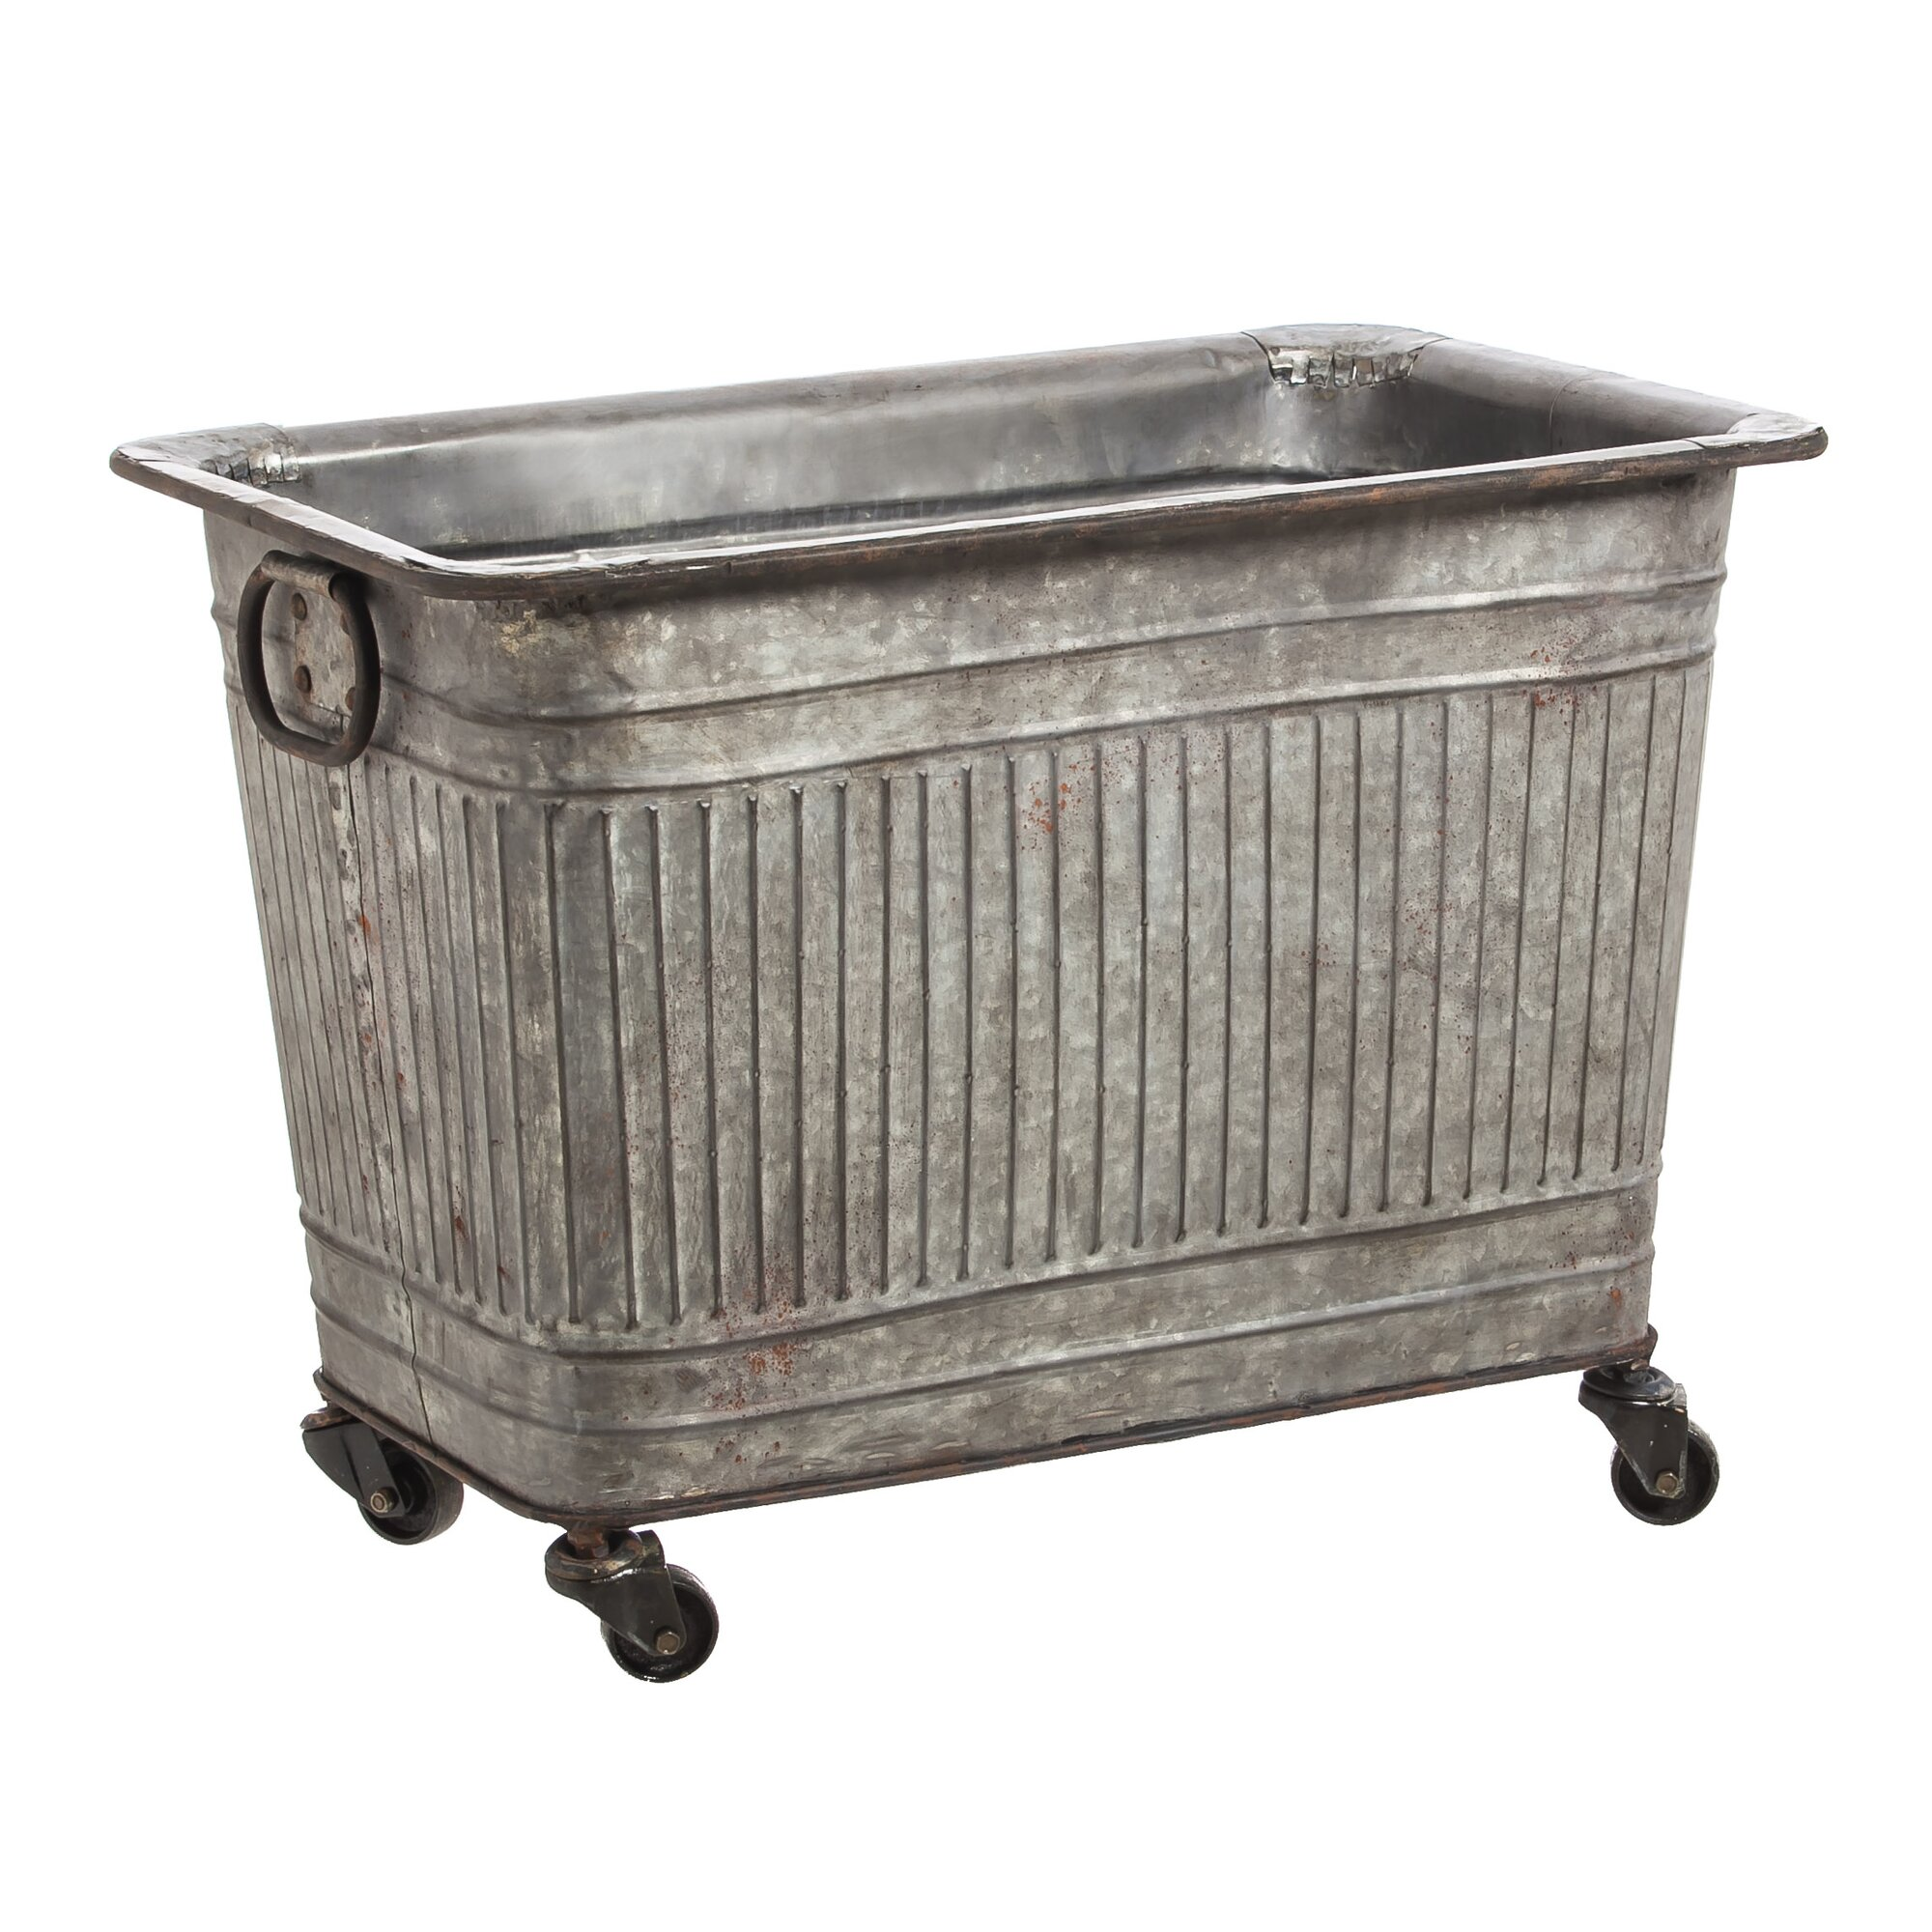 Laurel foundry modern farmhouse keira large galvanized for Large metal tub for gardening